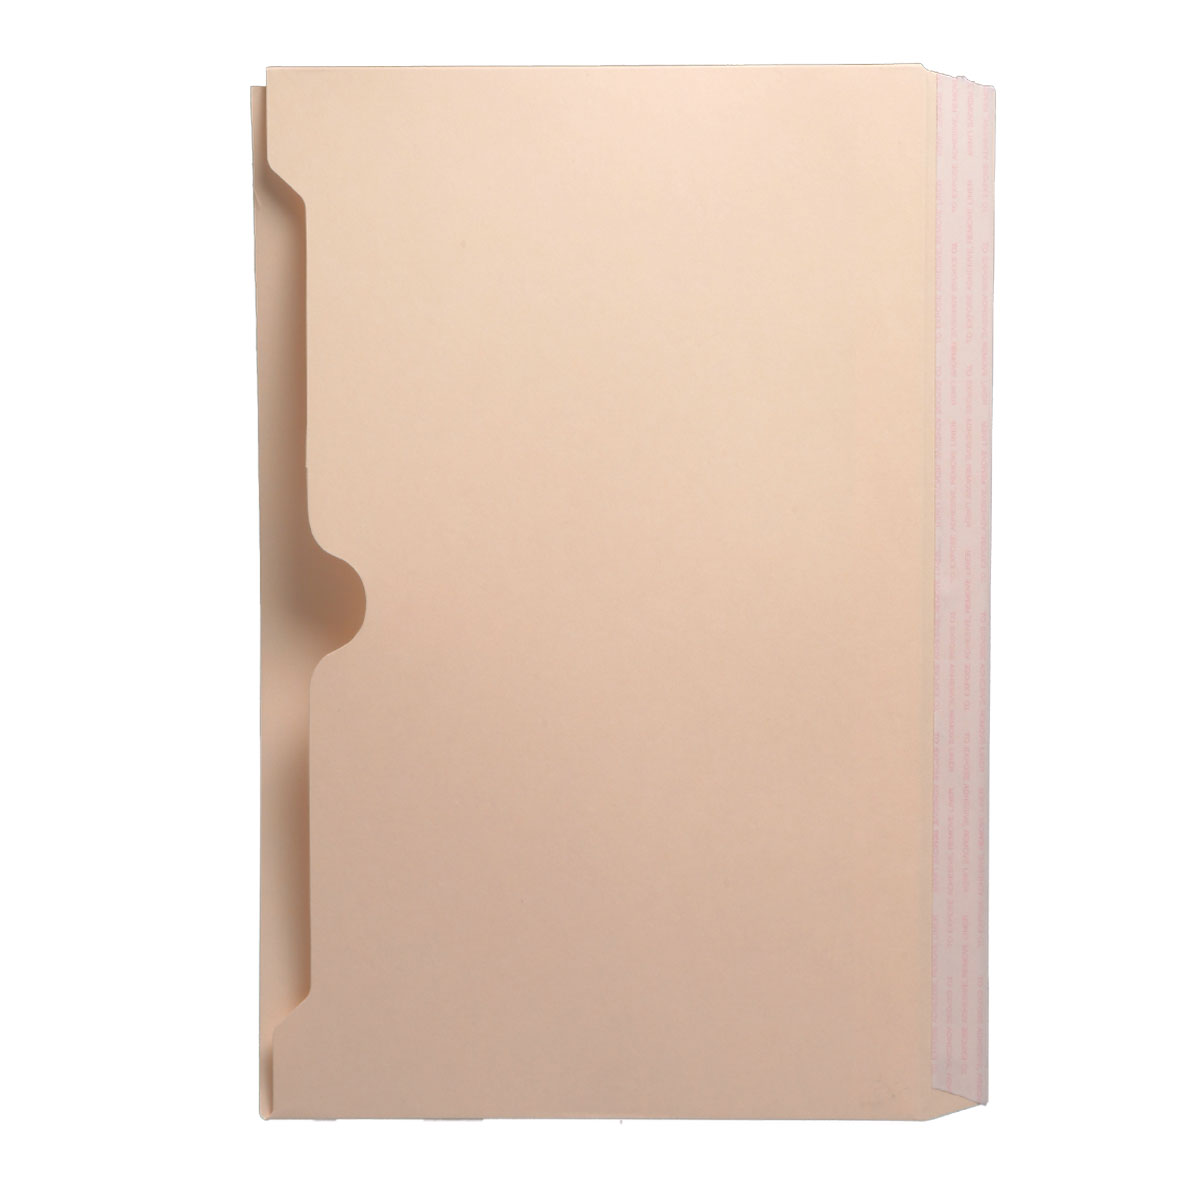 S-9048 - Self Adhesive Divider, Standard Side Flap, Full Pocket (Box of 50)